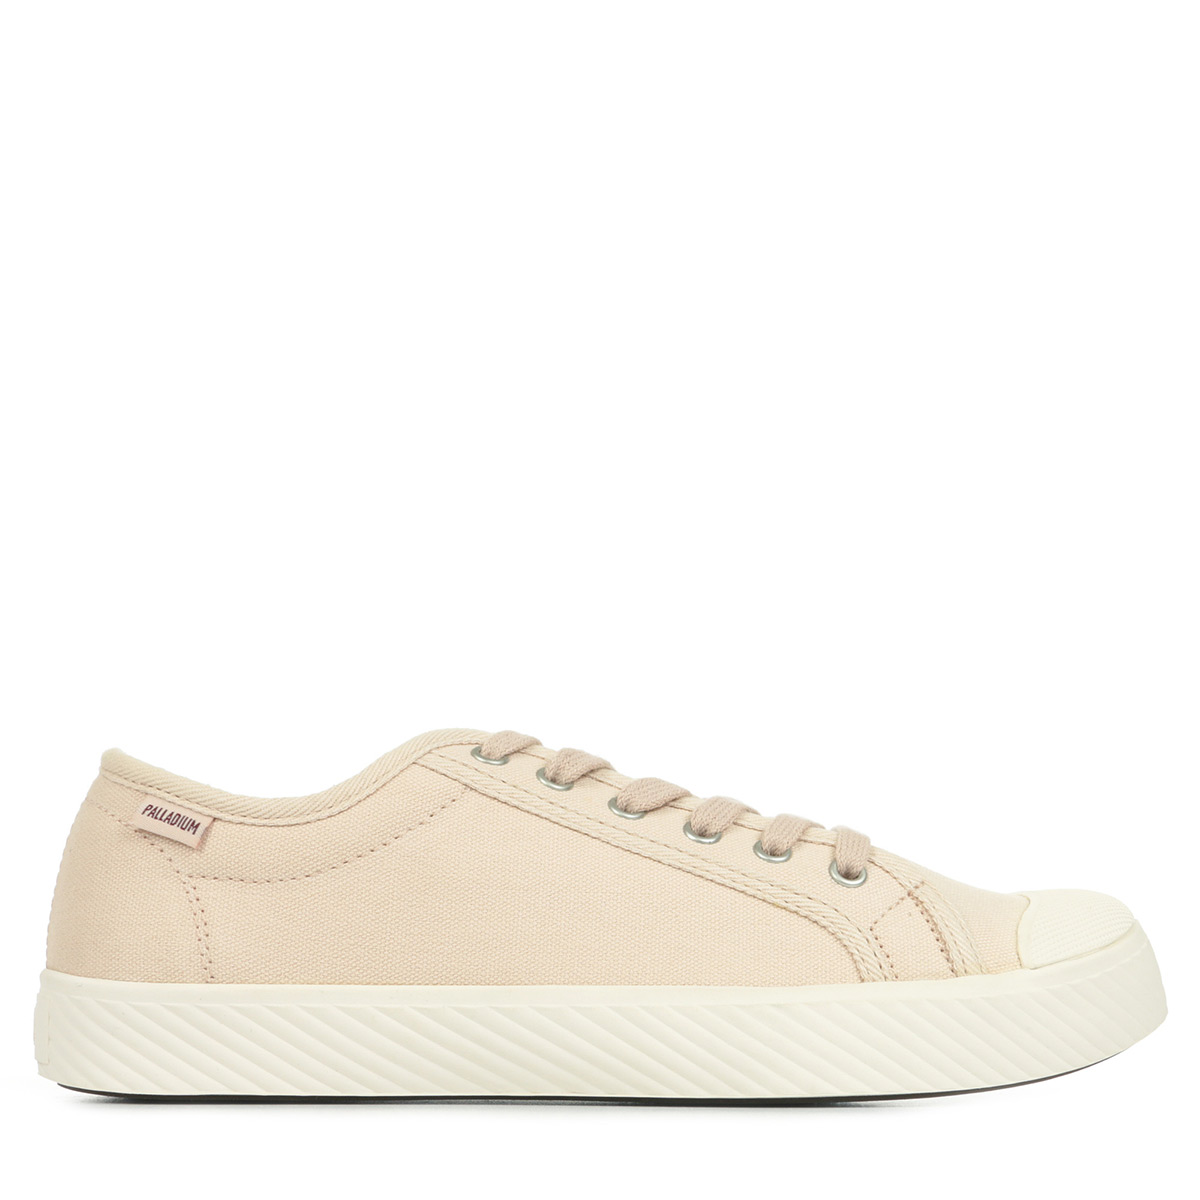 Palladium PallaPhoenix OG canvas